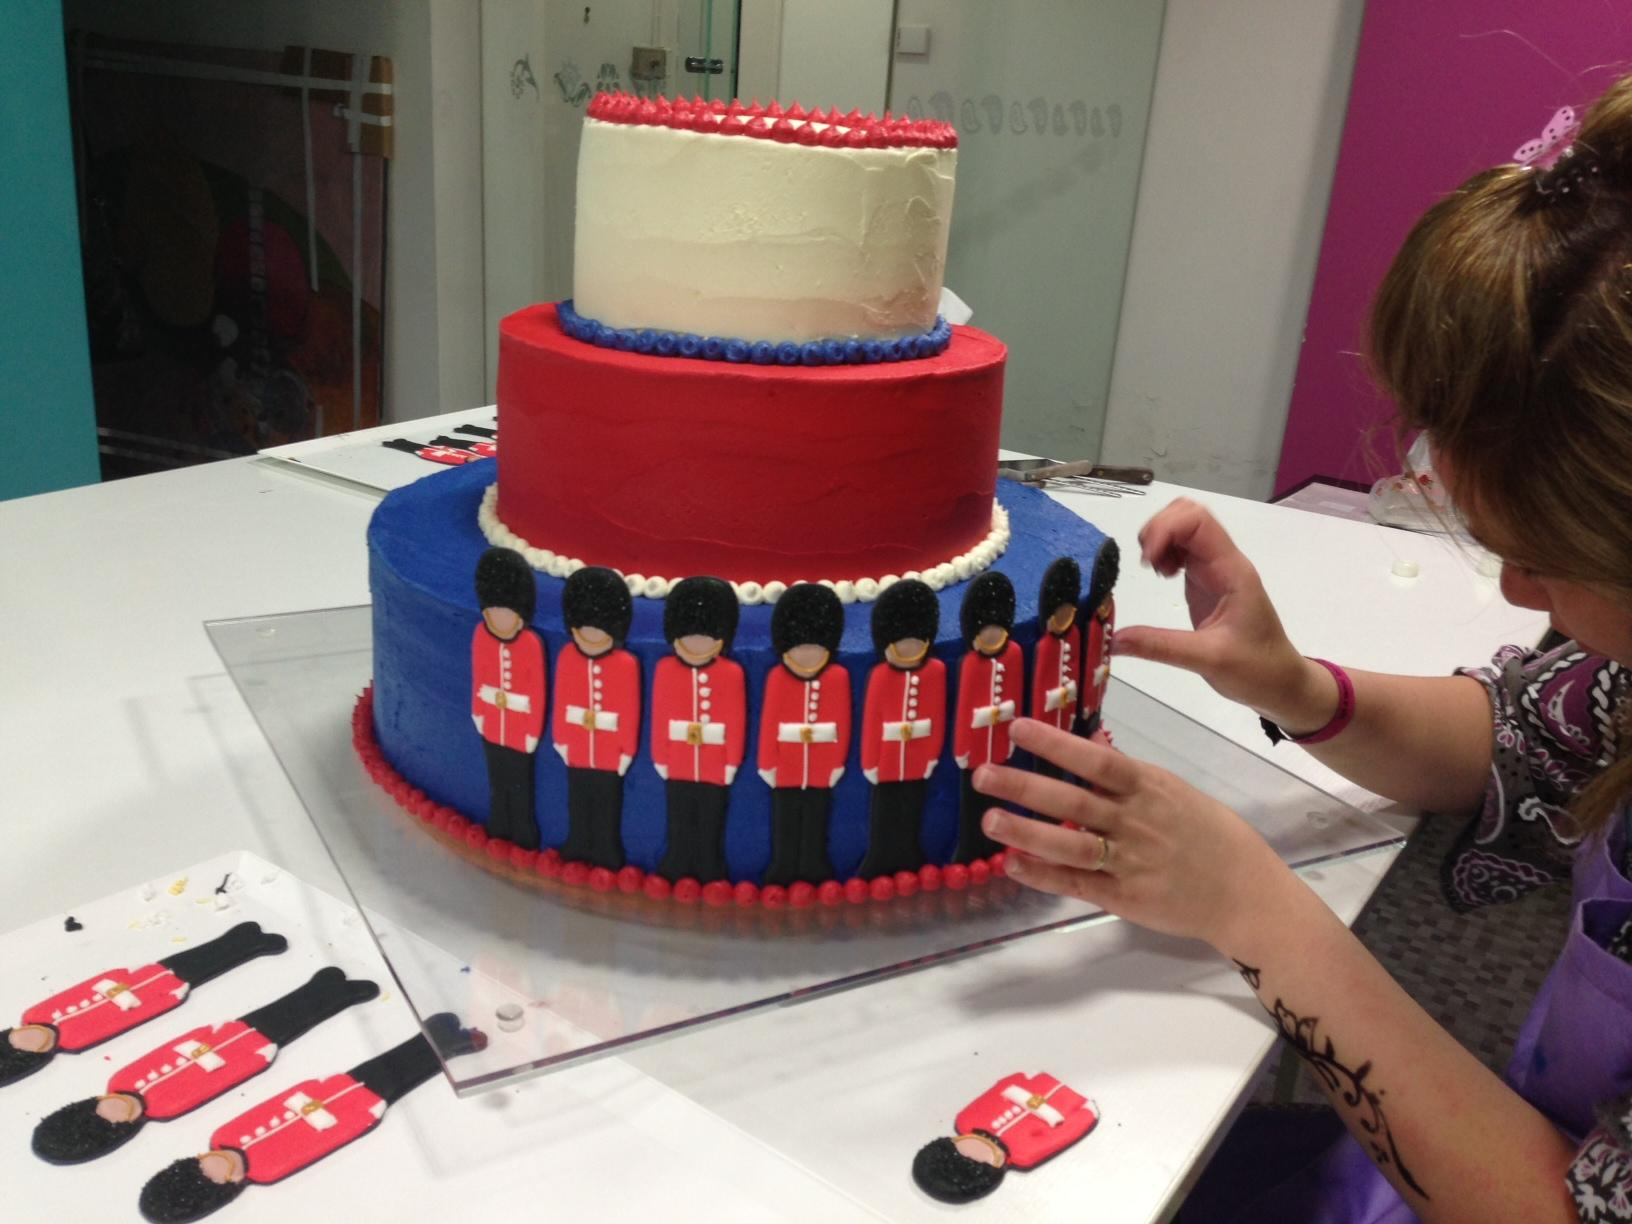 ... Queen Elizabeth's Birthday Cake: A Cake Fit For a Queen - Paperblog